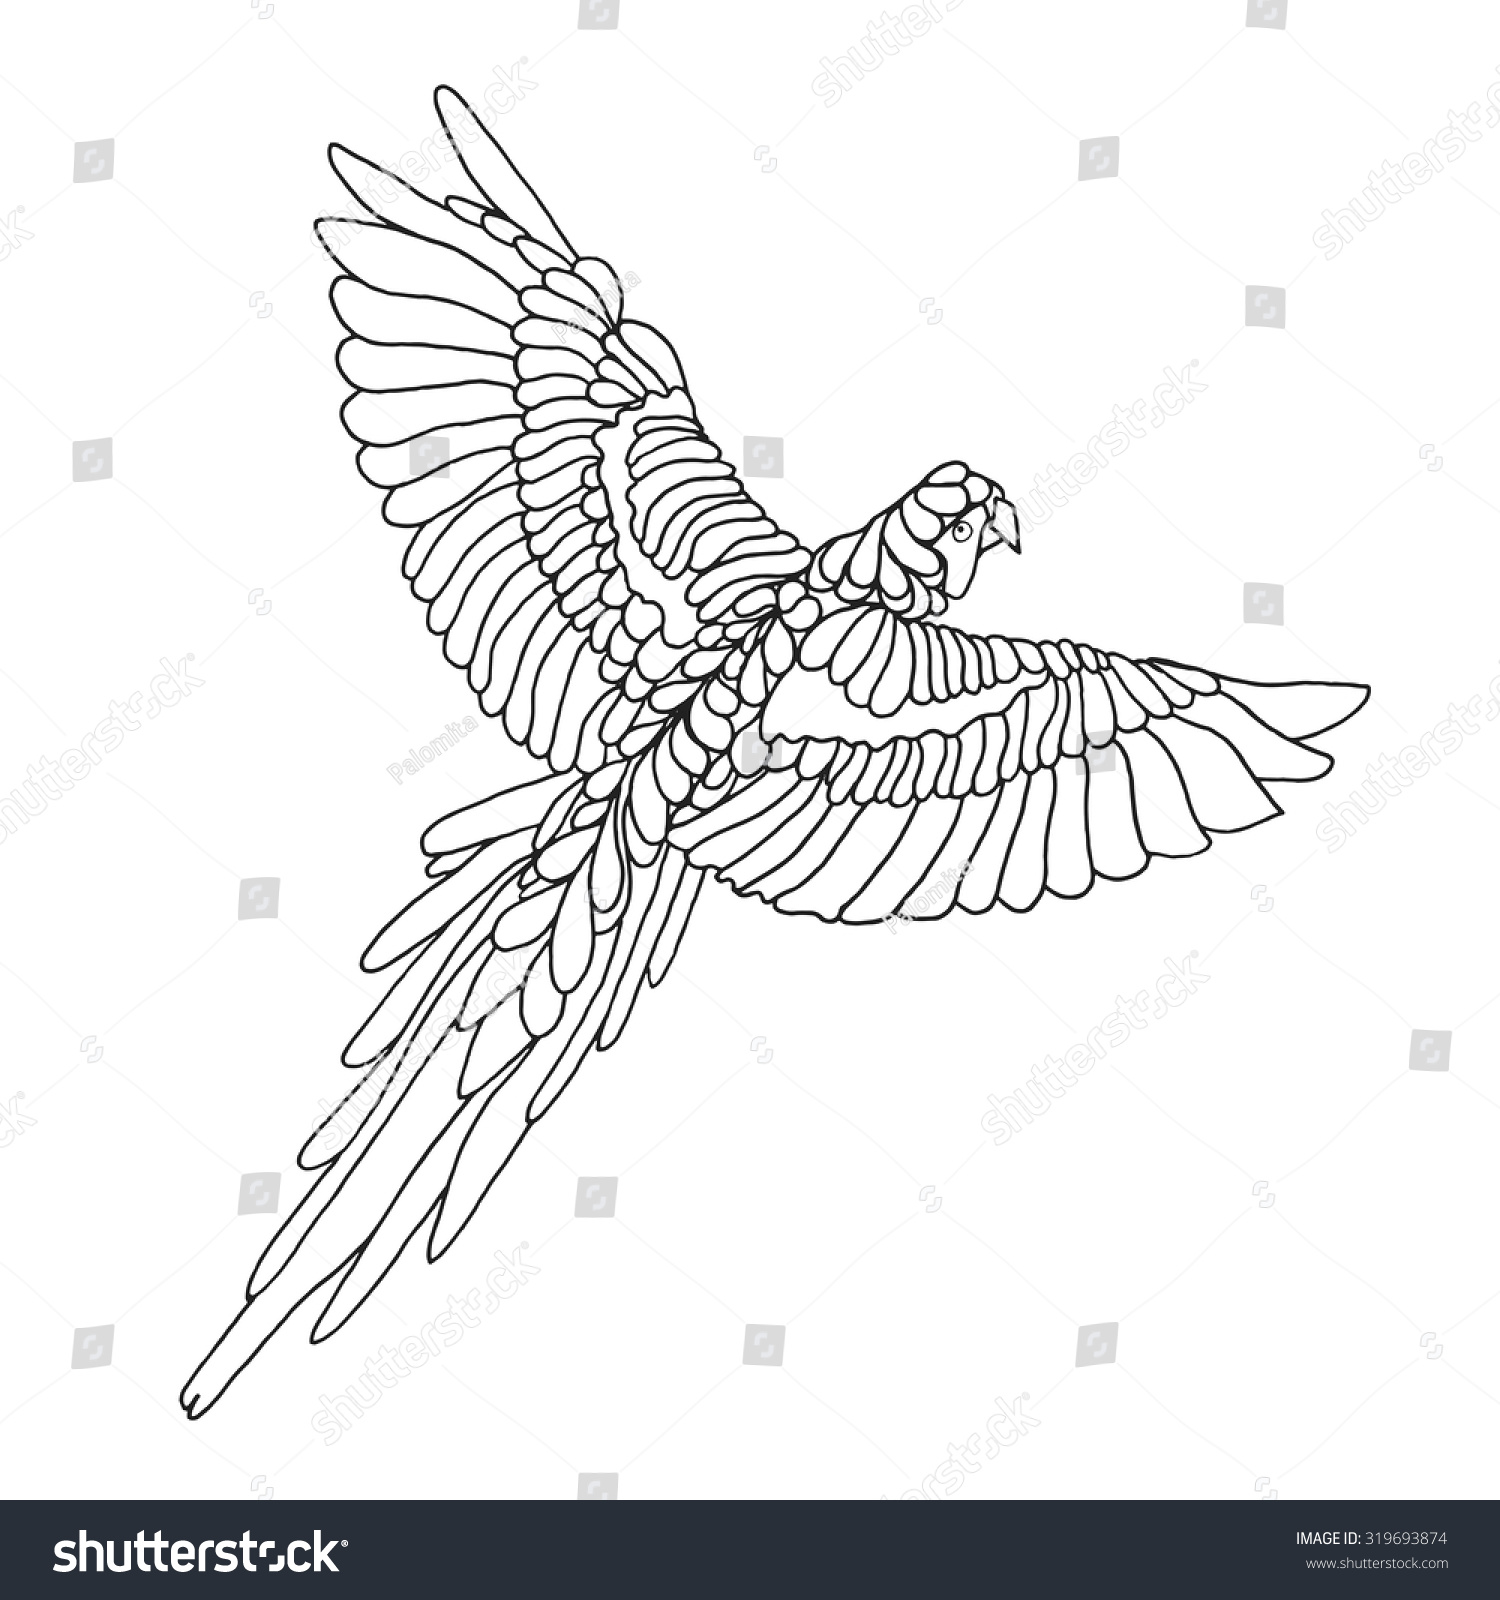 Macaw Parrot Coloring Page Birds Black Stock Vector (Royalty Free ...